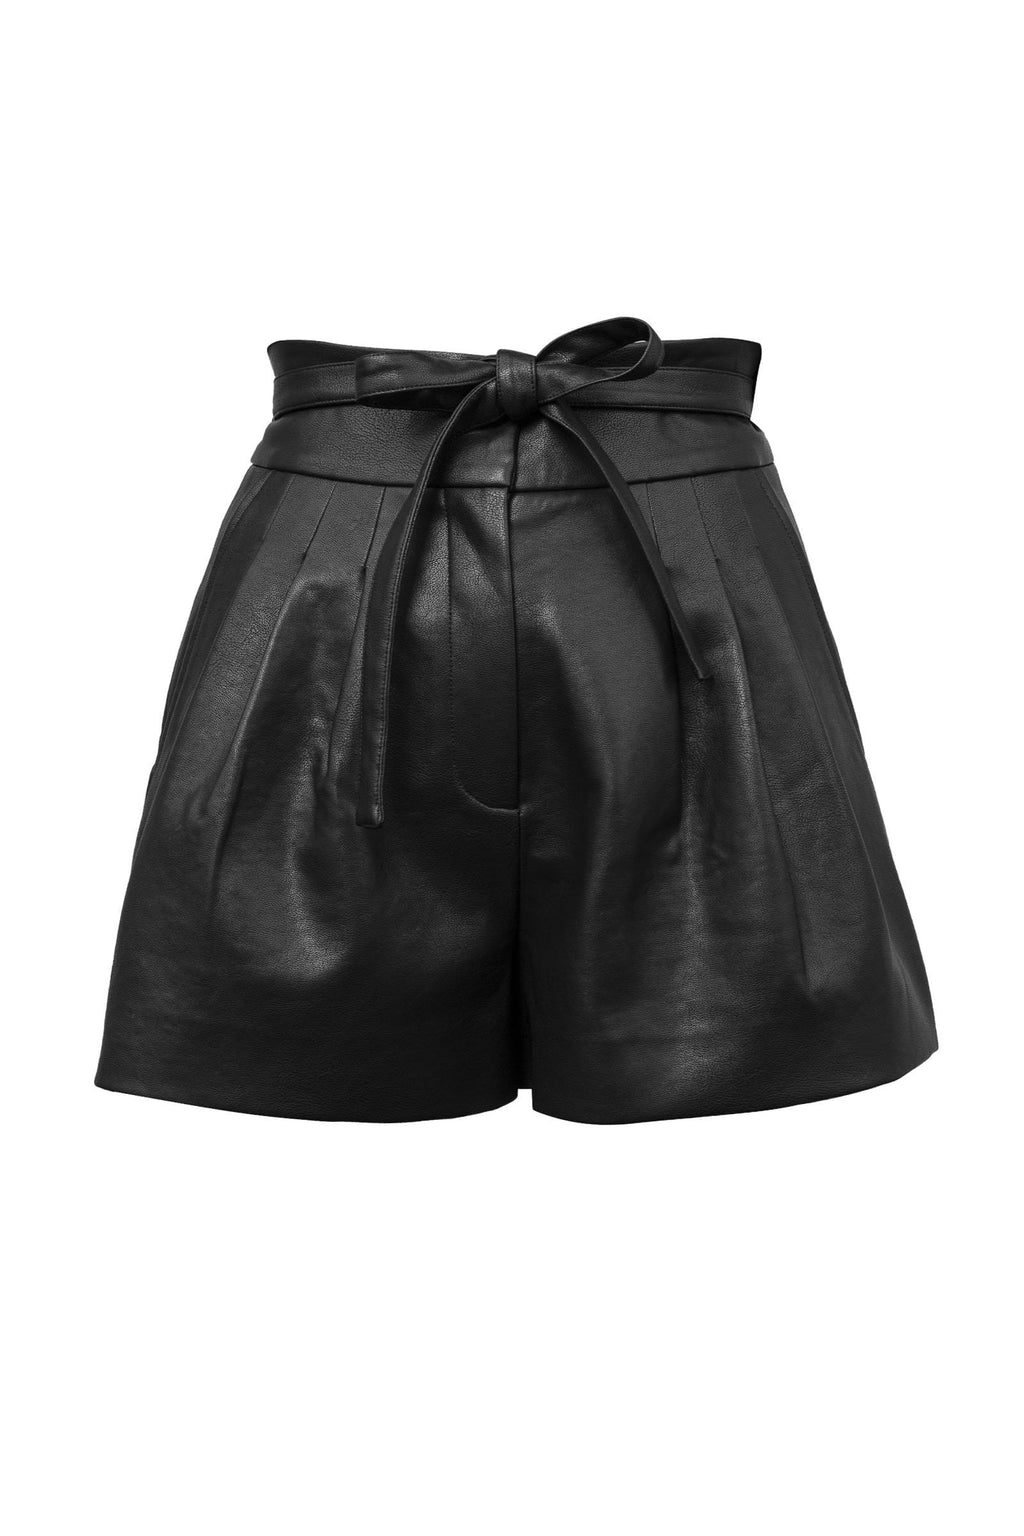 Lucy Leather Parachute Shorts